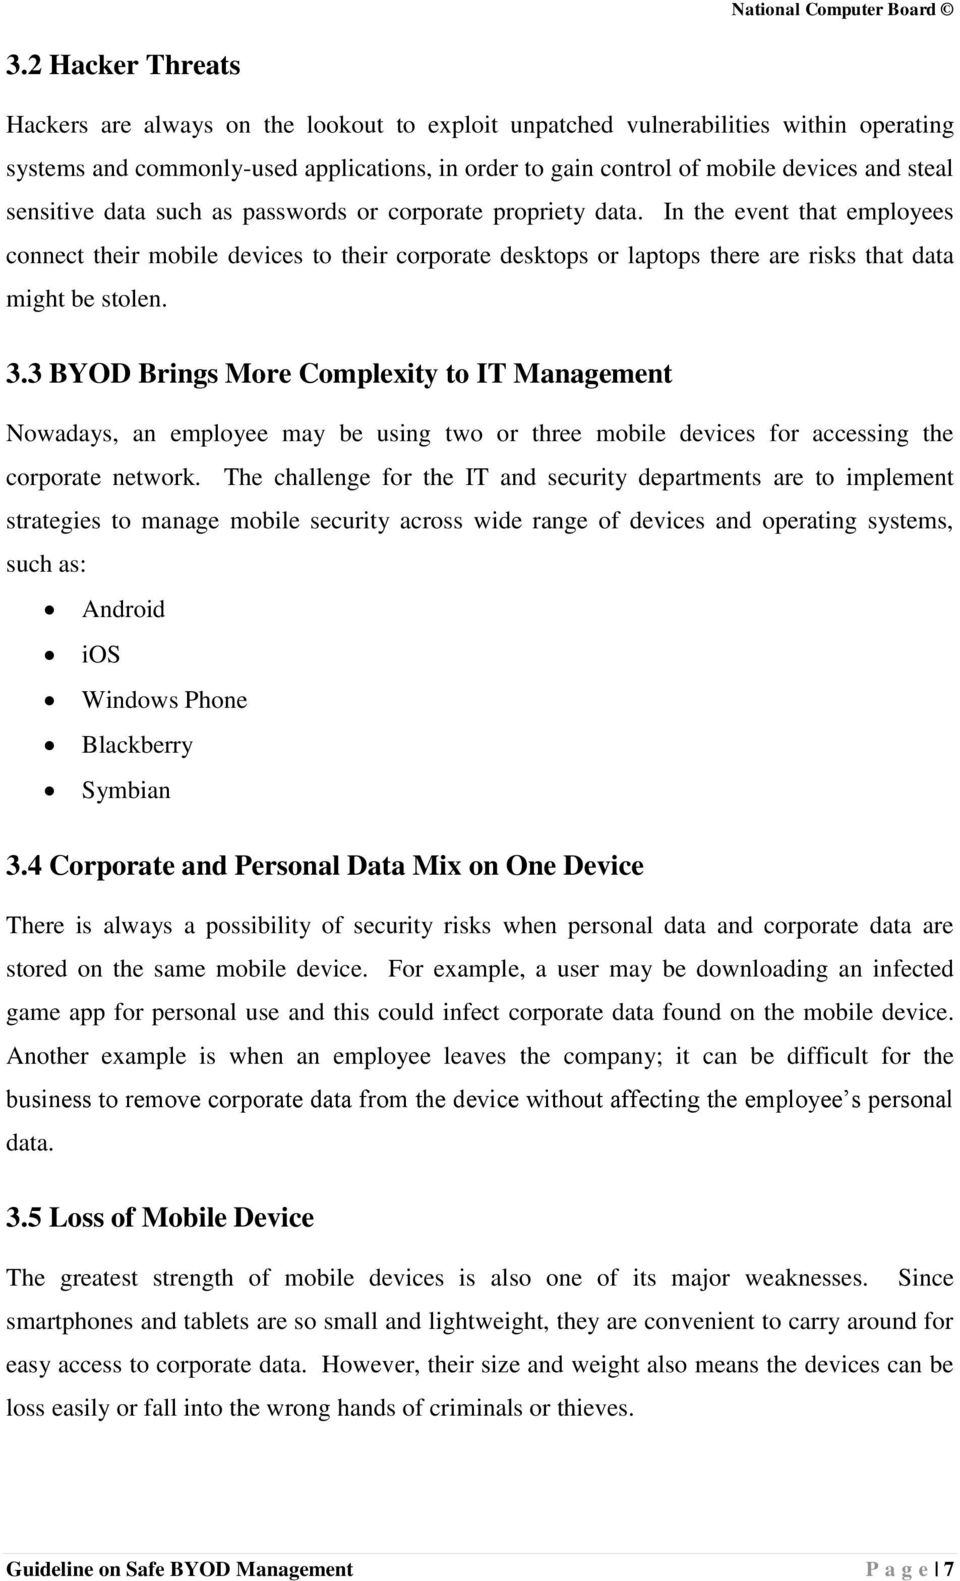 3.3 BYOD Brings More Complexity to IT Management Nowadays, an employee may be using two or three mobile devices for accessing the corporate network.